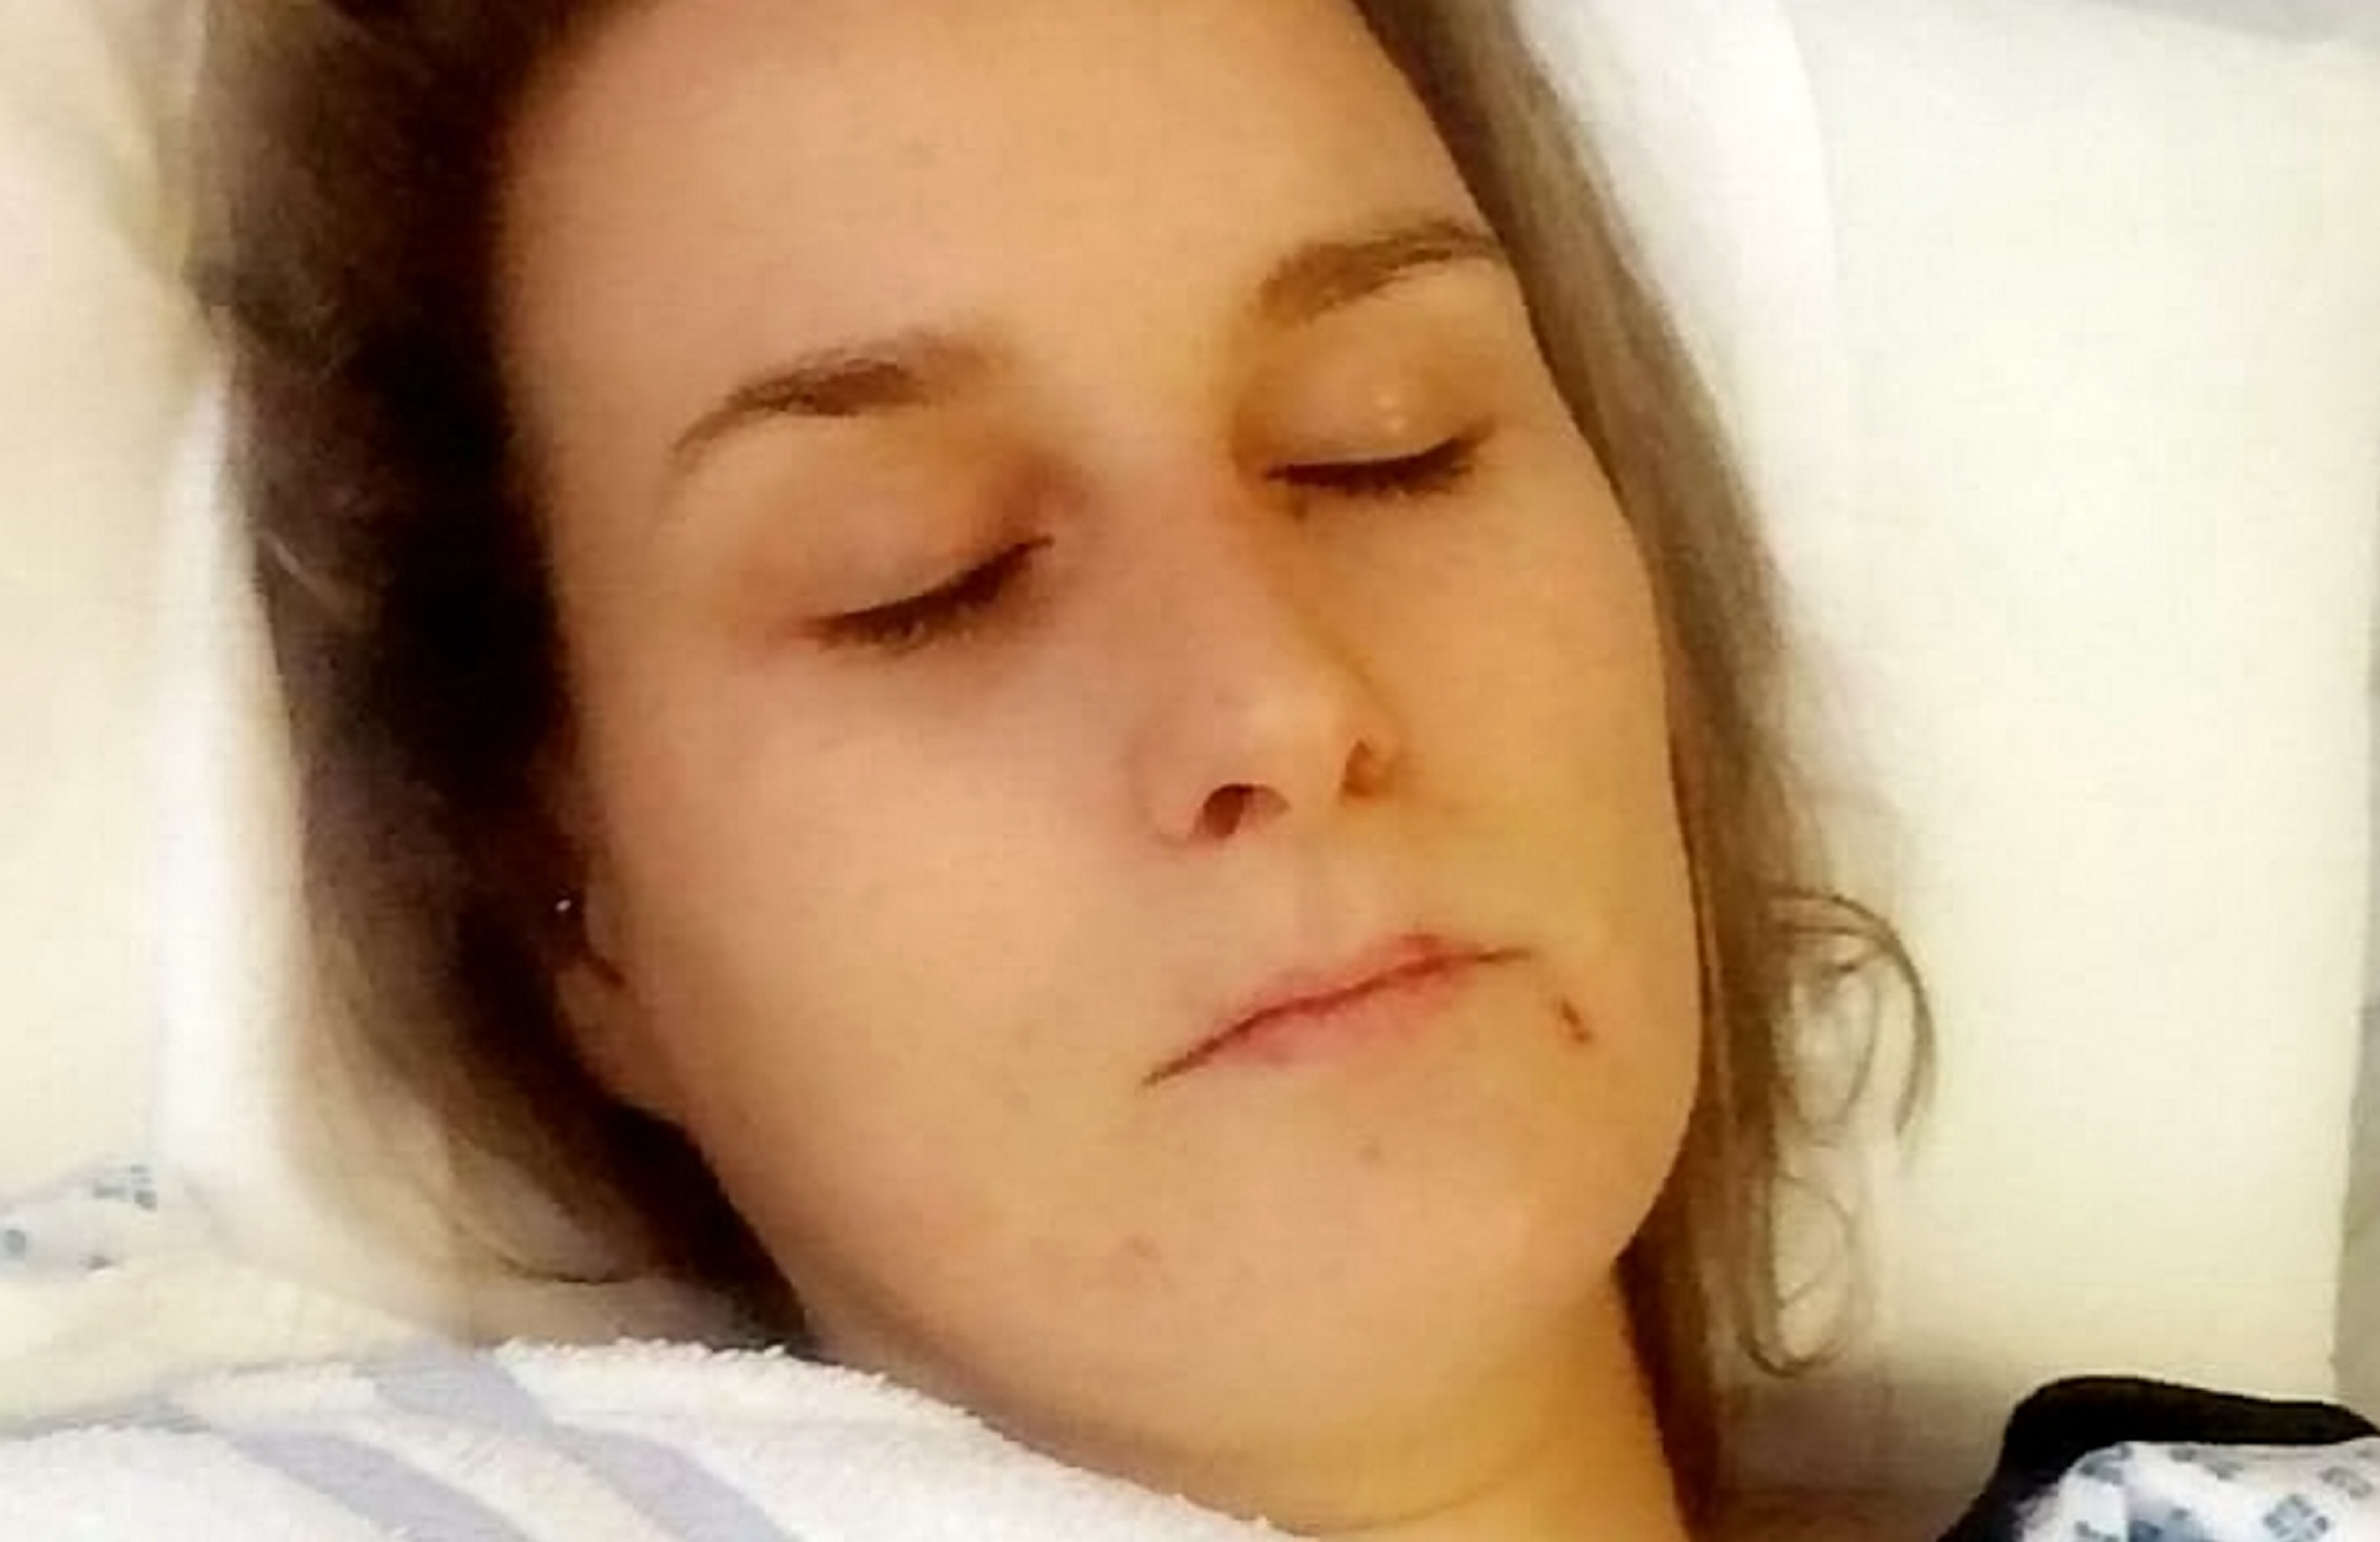 Mom claims birth control pill left her with yellow skin, severe liver damage